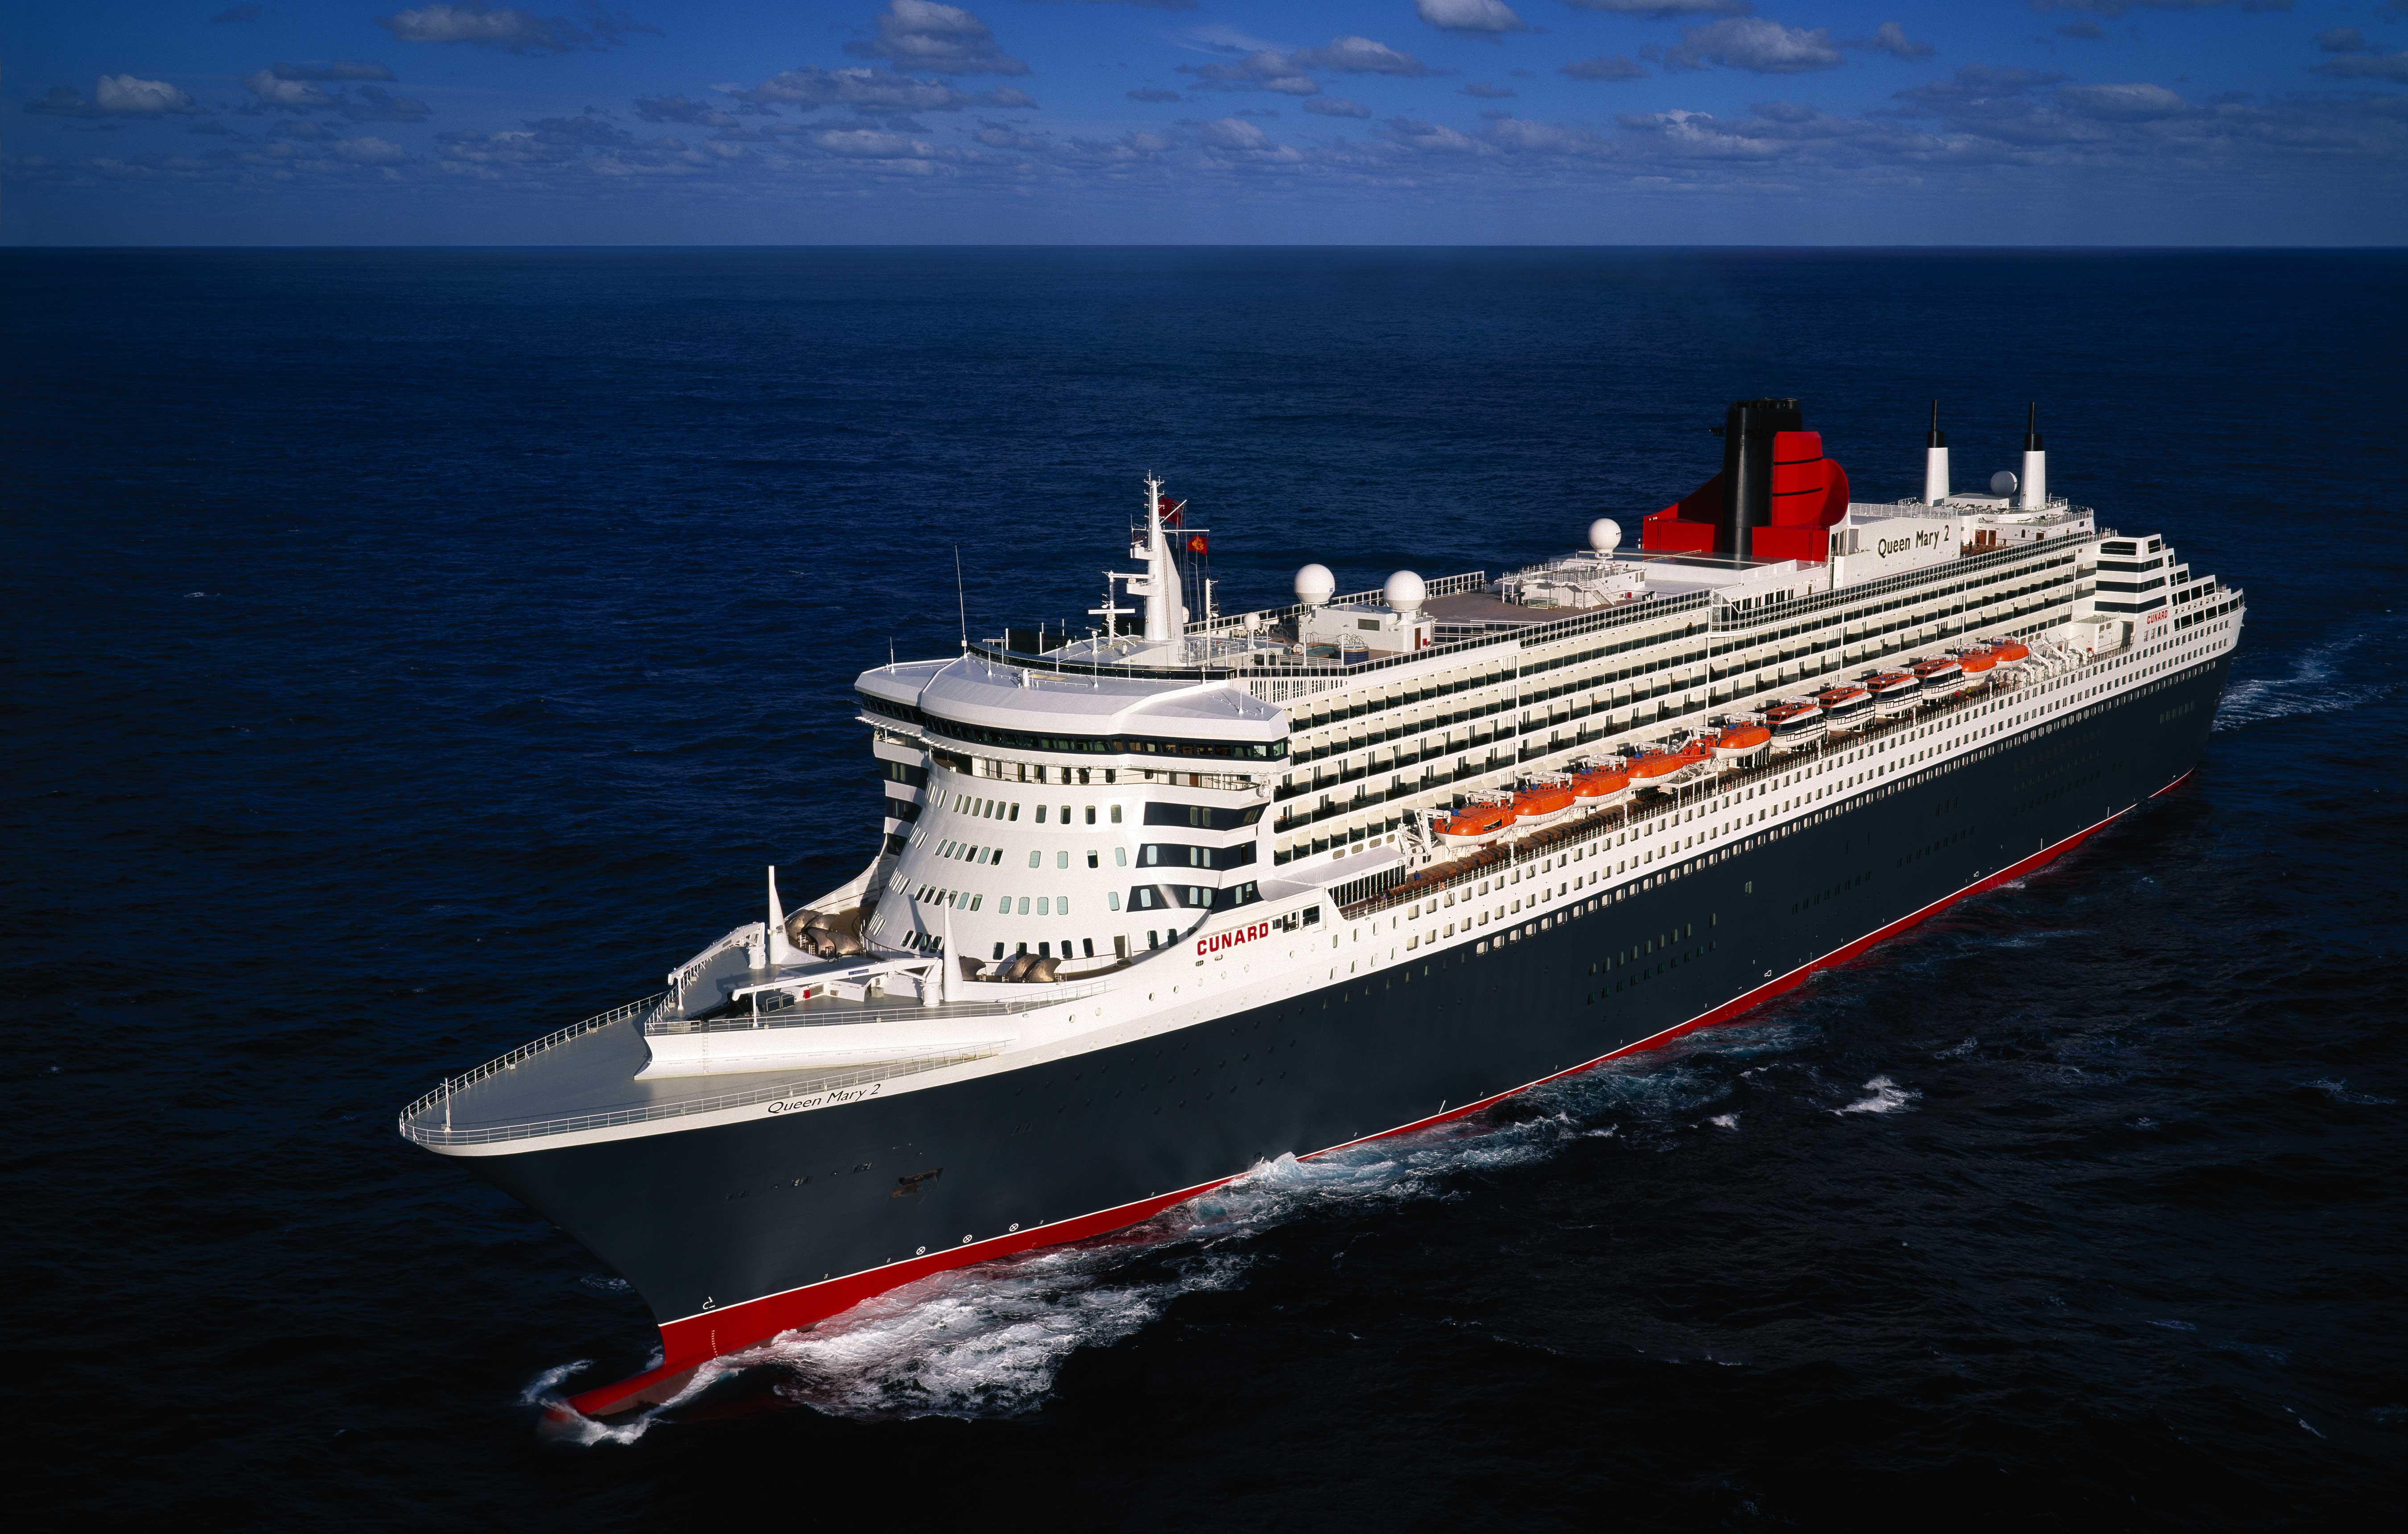 Cunard Reveals Queen Mary 2 Remastered  Cruisemiss Cruise